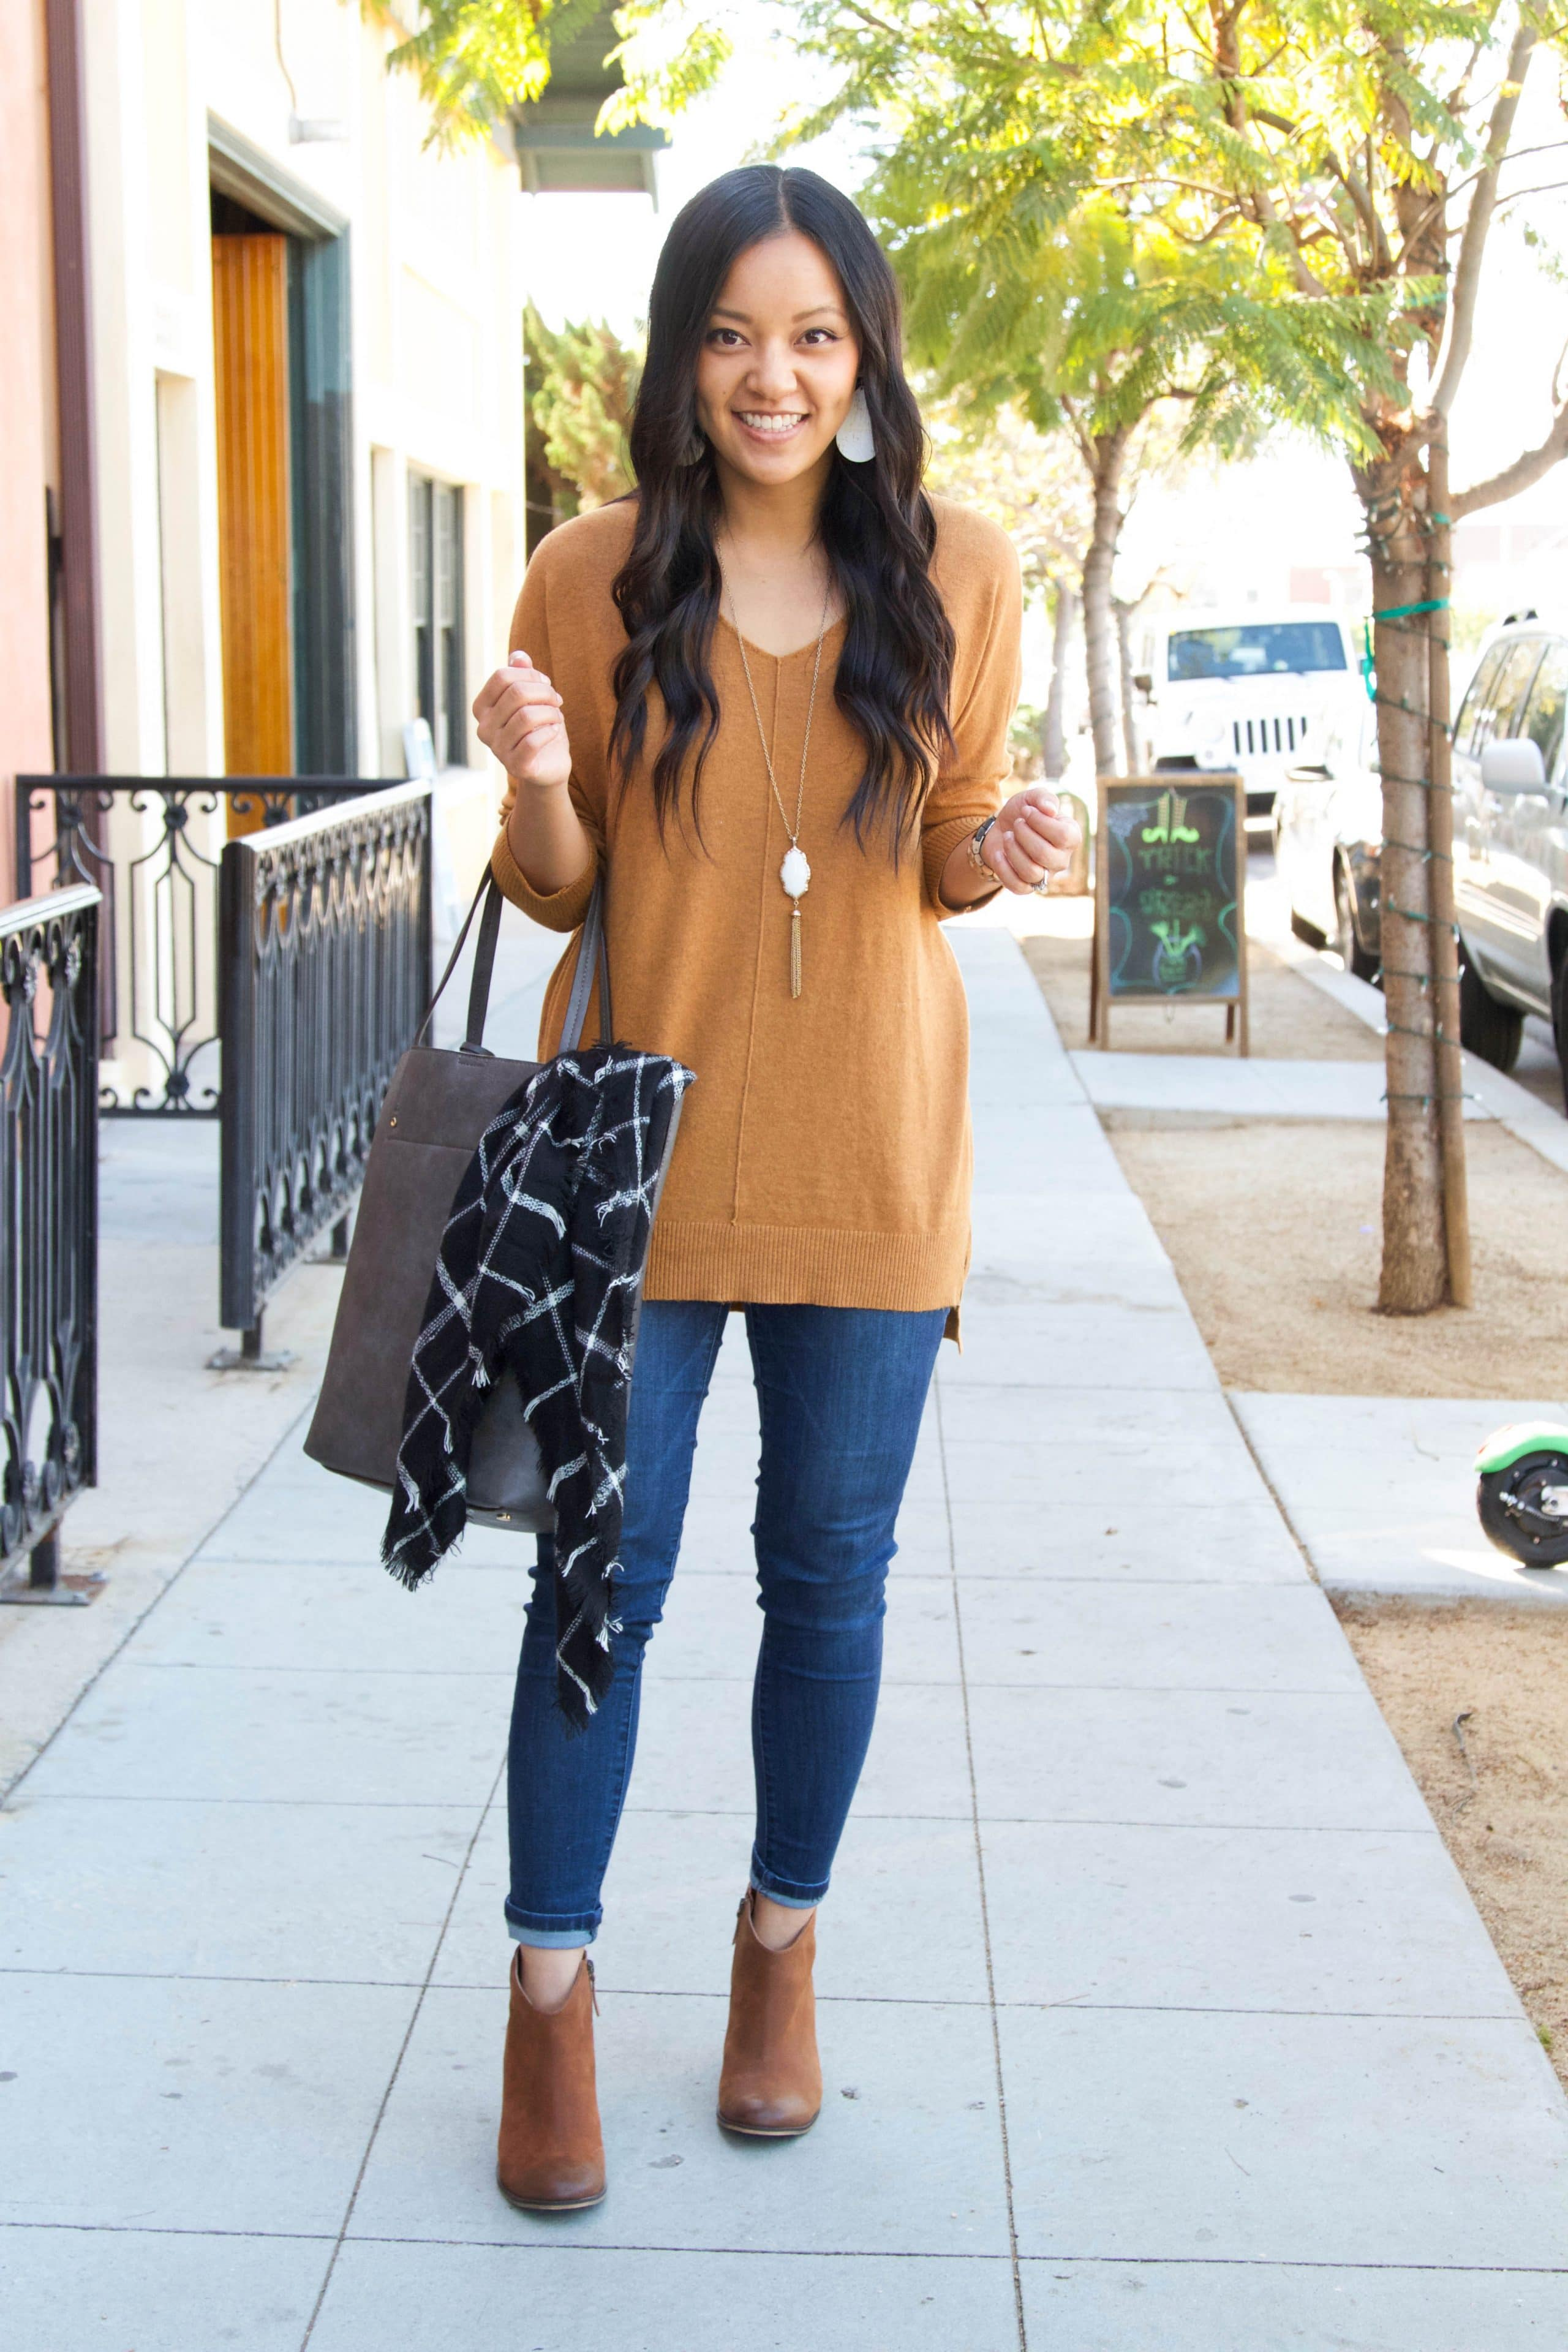 Brown Dreamers Sweater + Skinnies + Booties + Tote + White Accessories